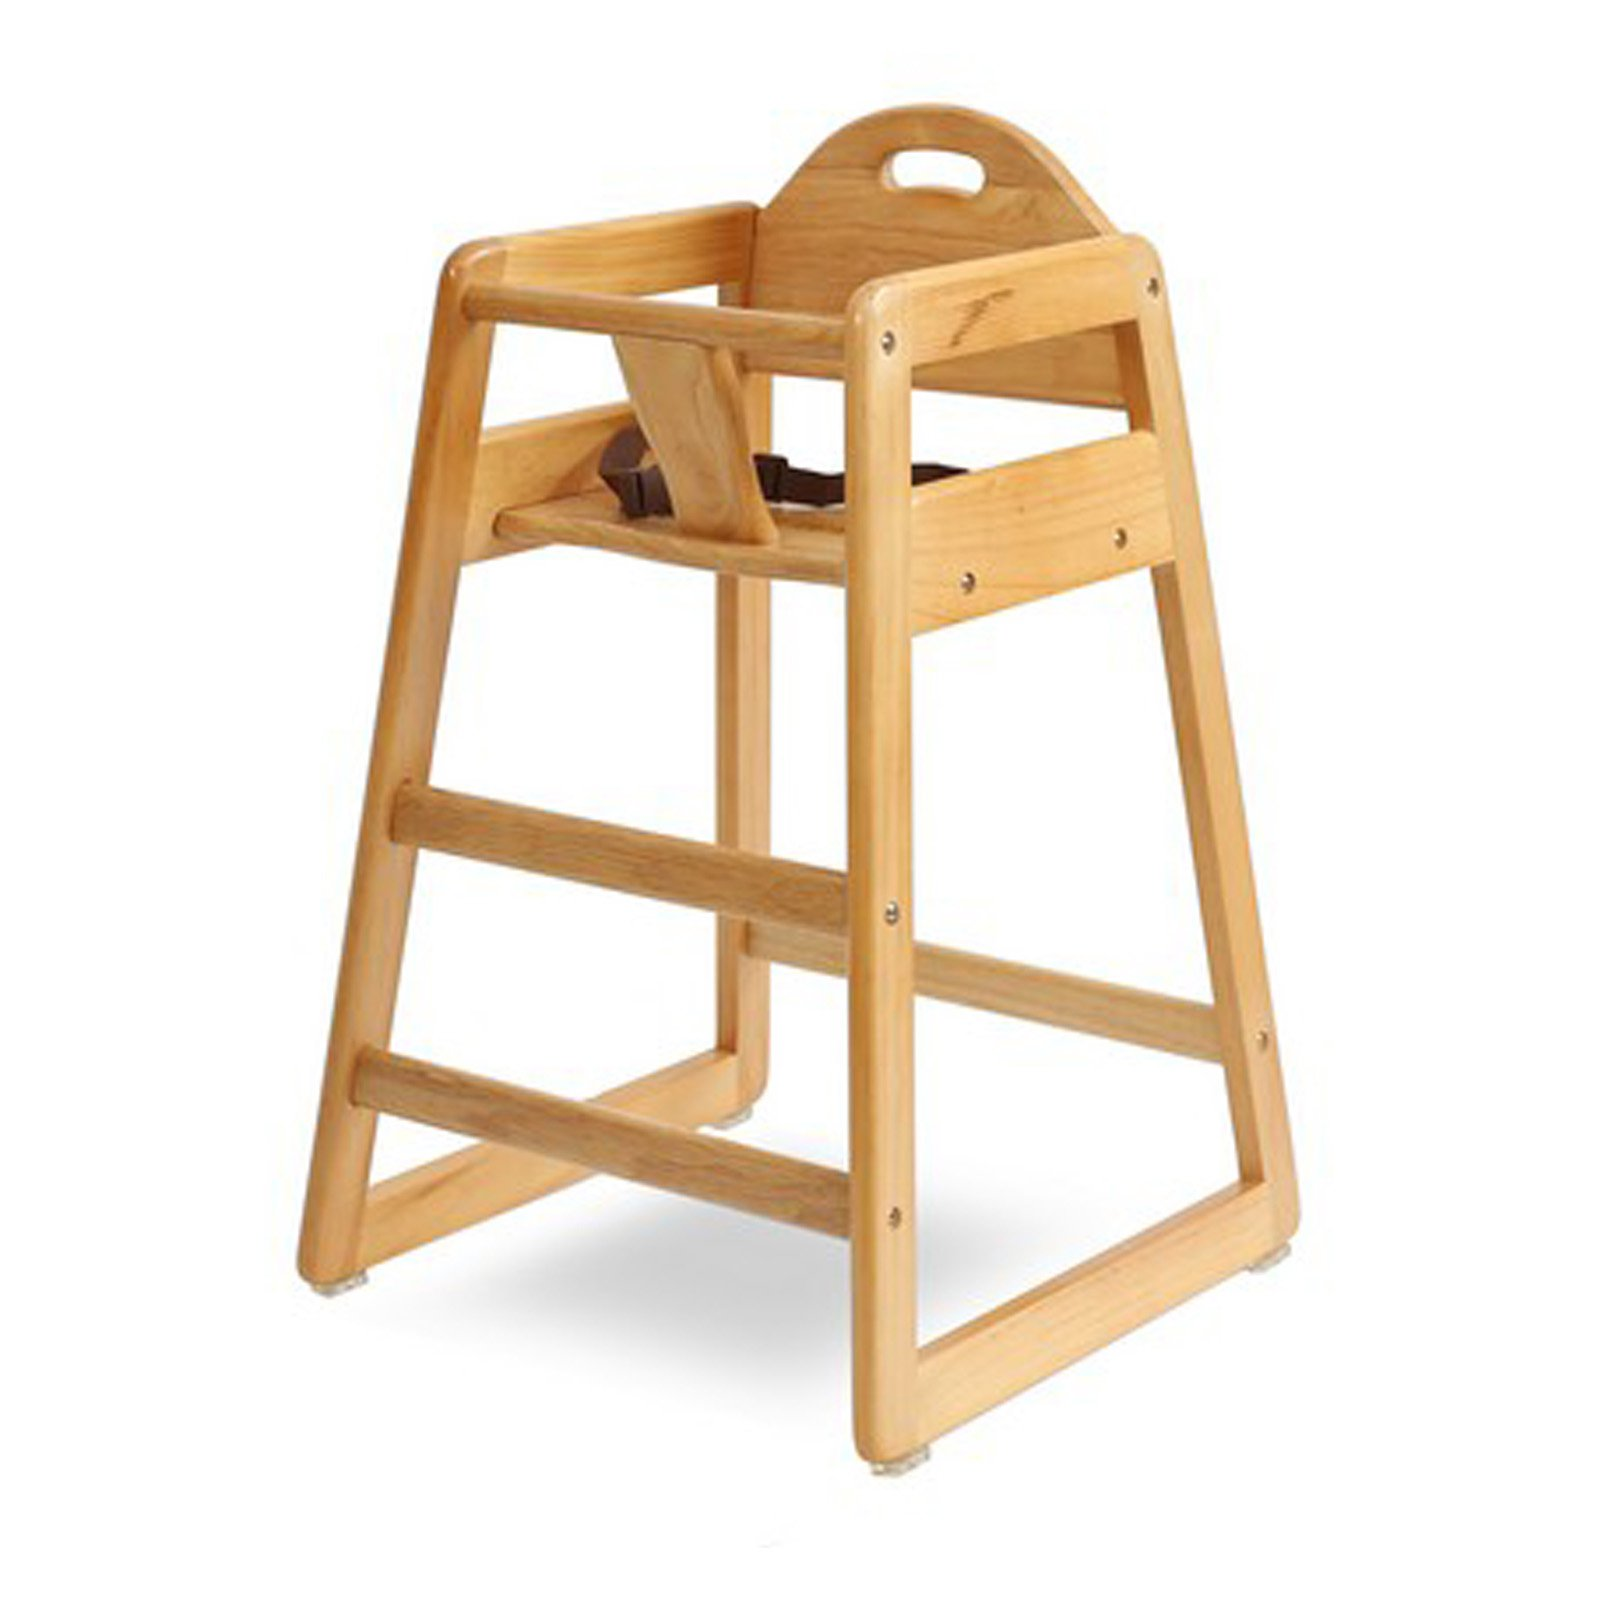 LA Baby Solid Wood High Chair, Natural